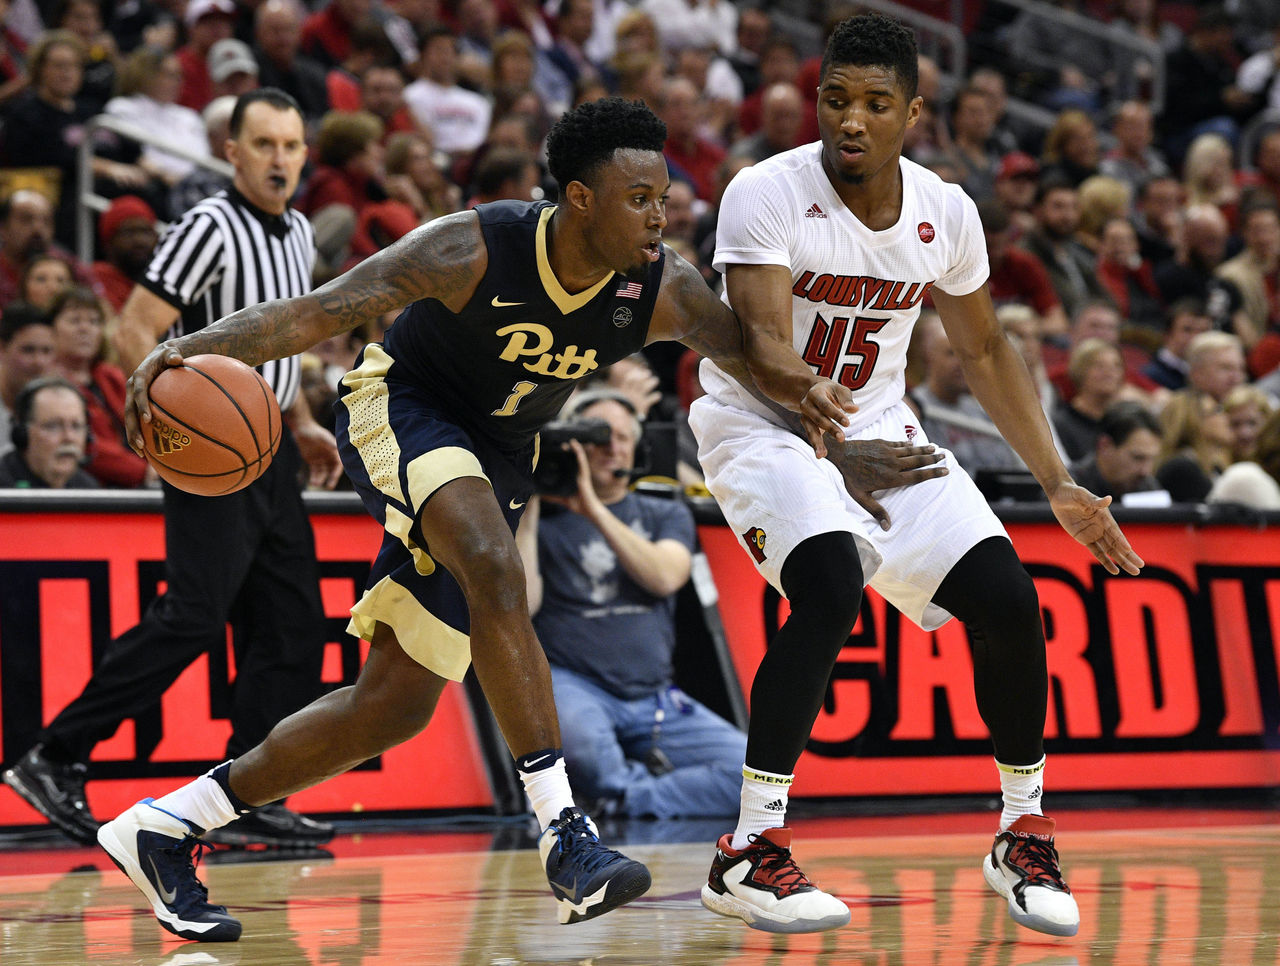 Cropped_2017-01-12t023854z_1429912517_nocid_rtrmadp_3_ncaa-basketball-pittsburgh-at-louisville